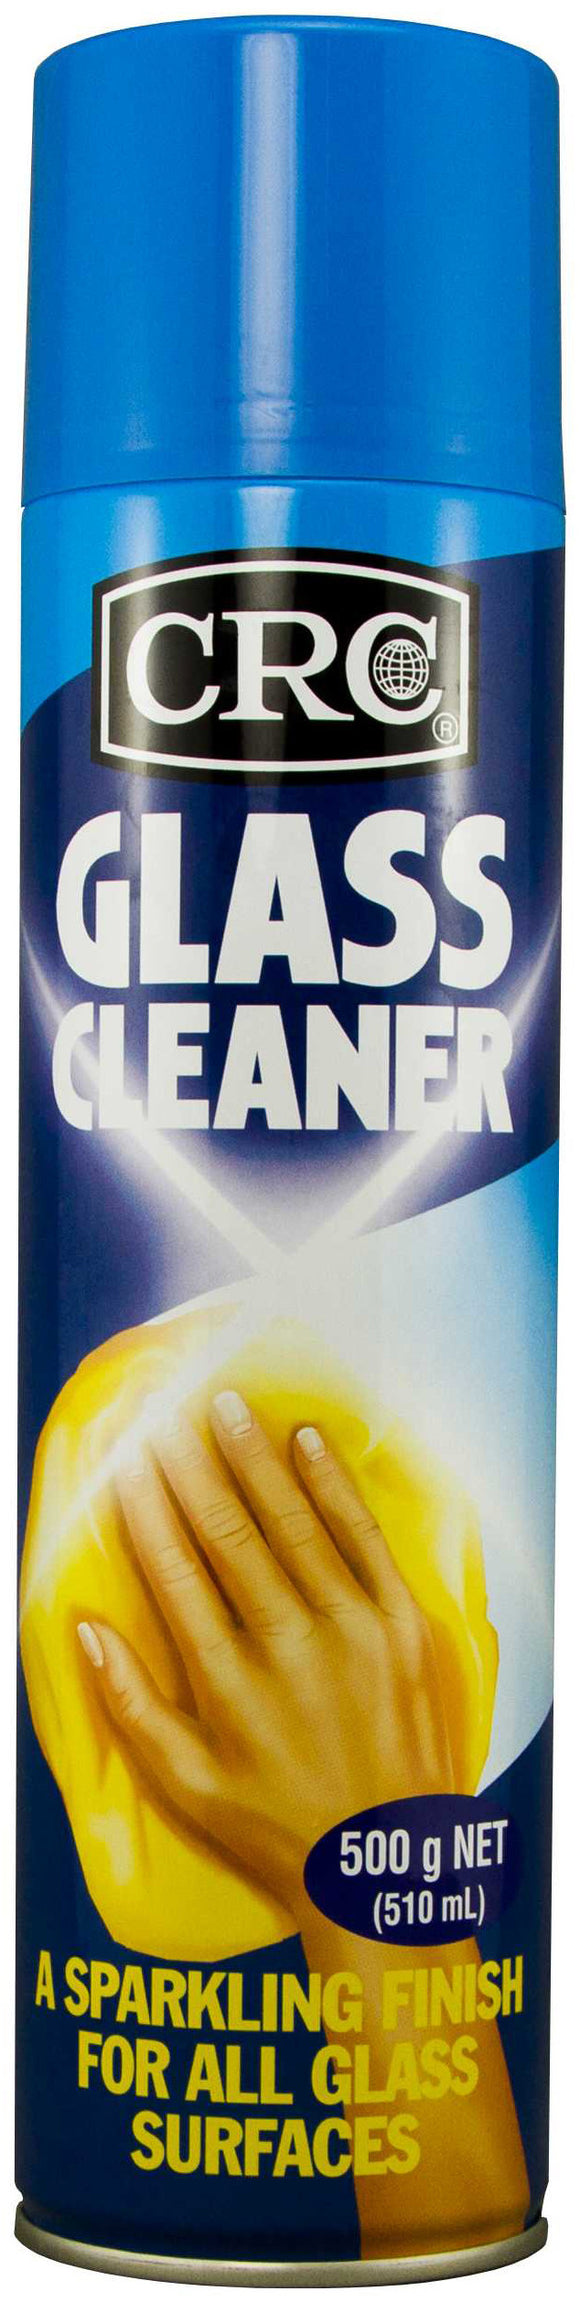 CRC AEROSOL GLASS CLEANER 500G (M-3070)